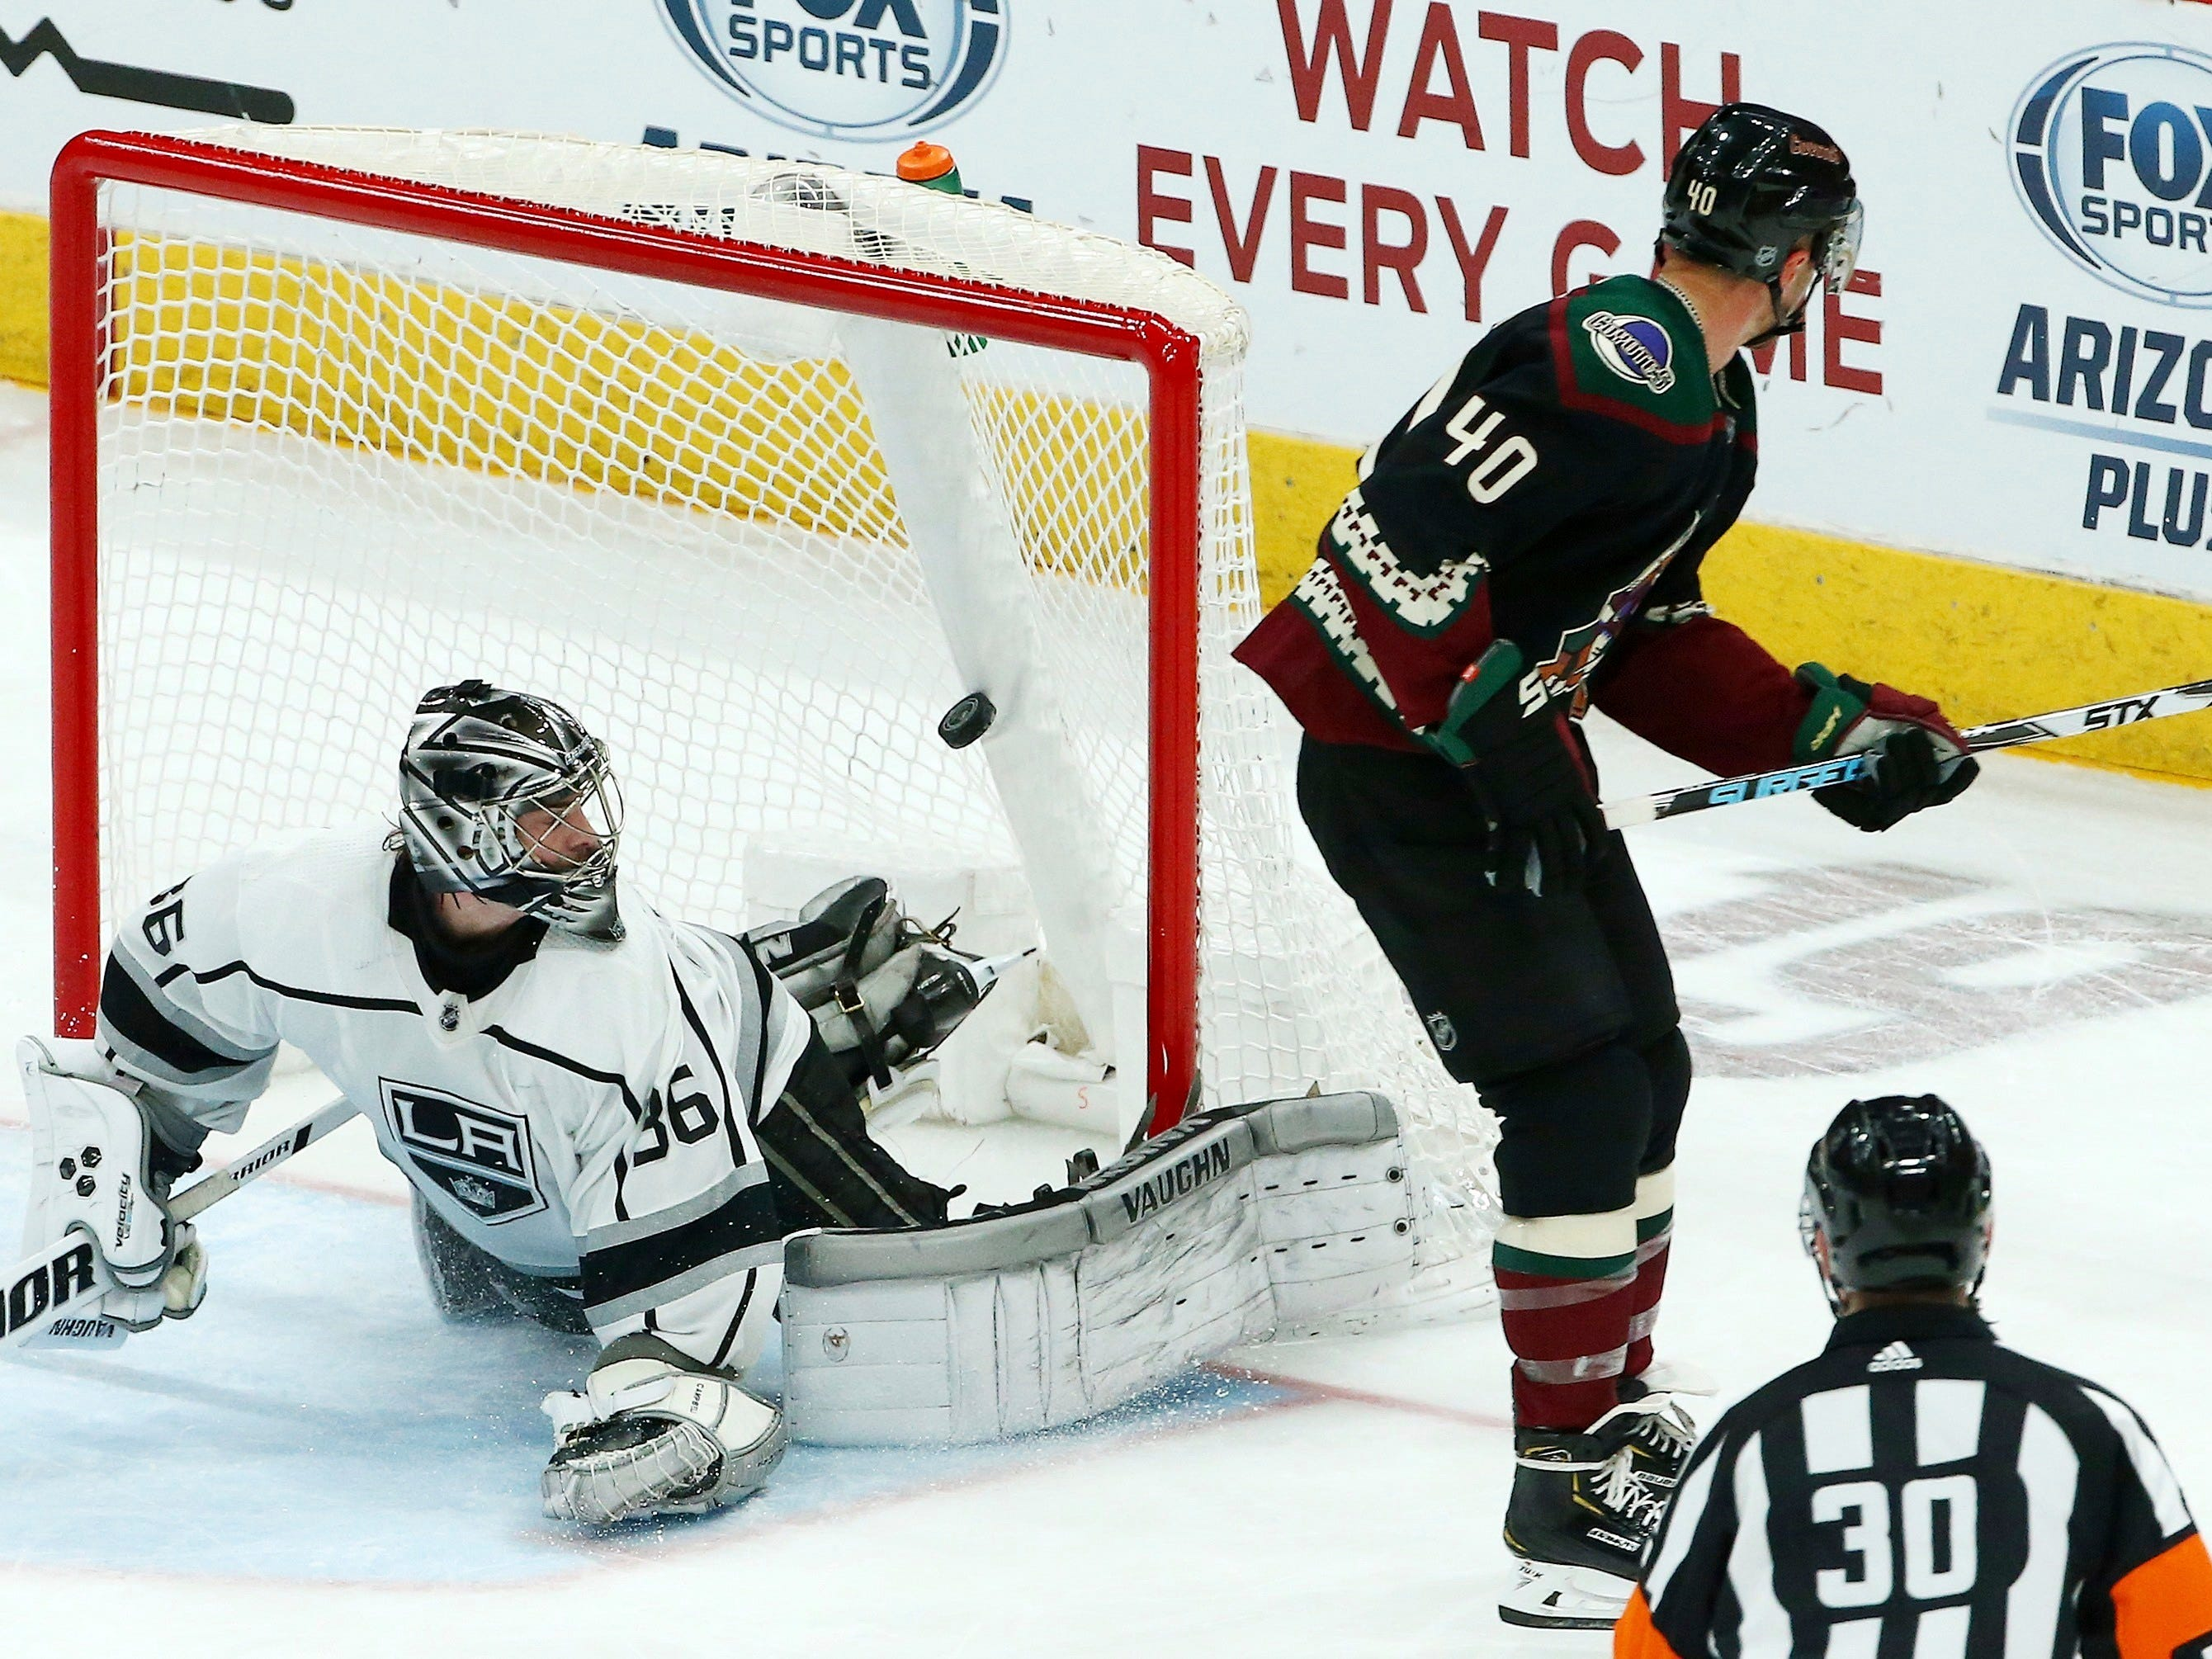 Arizona Coyotes right wing Michael Grabner (40) scores a goal against Los Angeles Kings goaltender Jack Campbell (36) as referee Kendrick Nicholson (30) looks on during the third period of an NHL hockey game Saturday, March 9, 2019, in Glendale, Ariz. The Coyotes defeated the Kings 4-2.